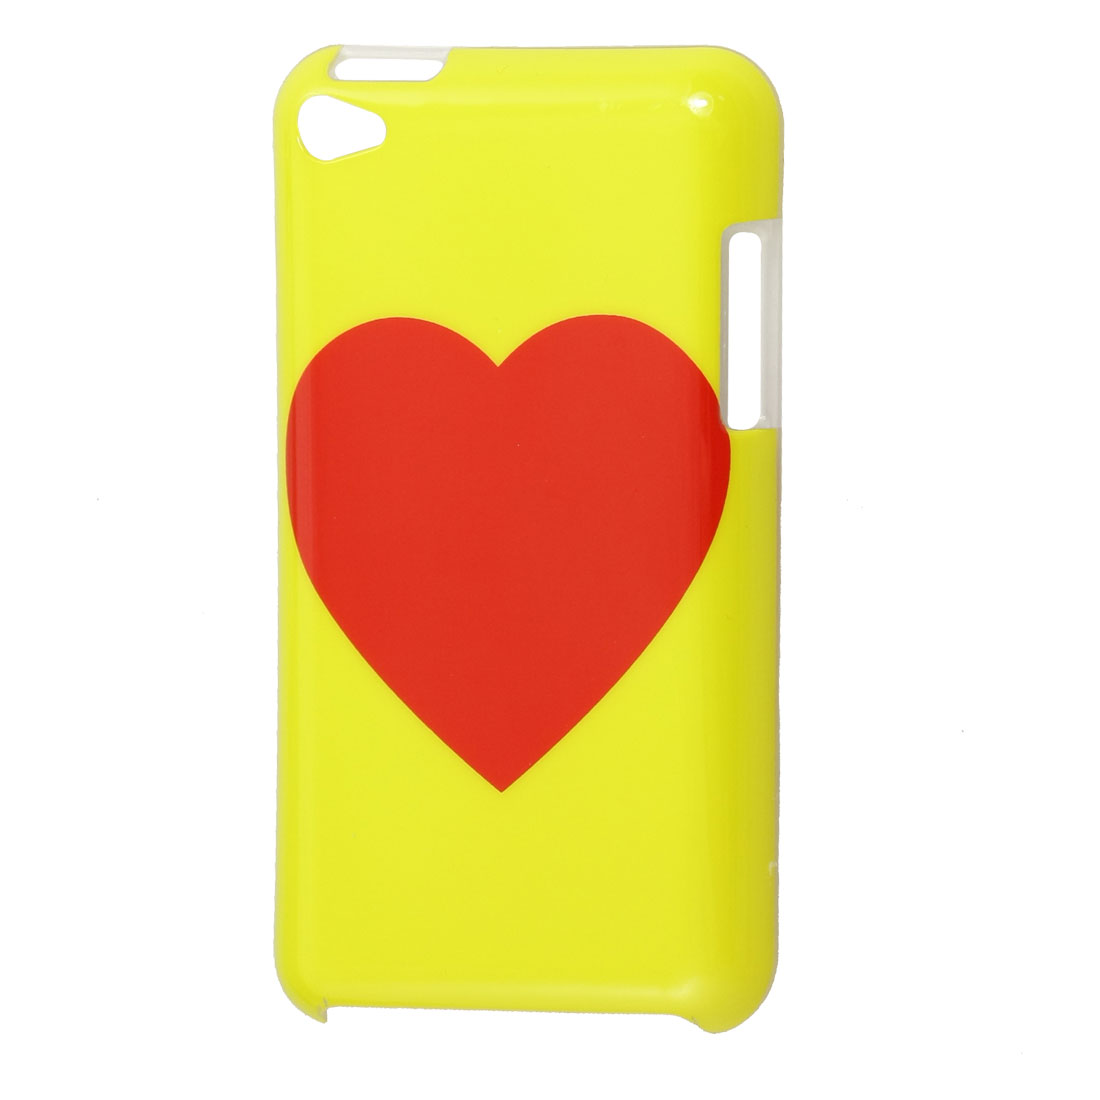 Red Heart Pattern Yellow Hard Plastic IMD Back Case for iPod Touch 4G